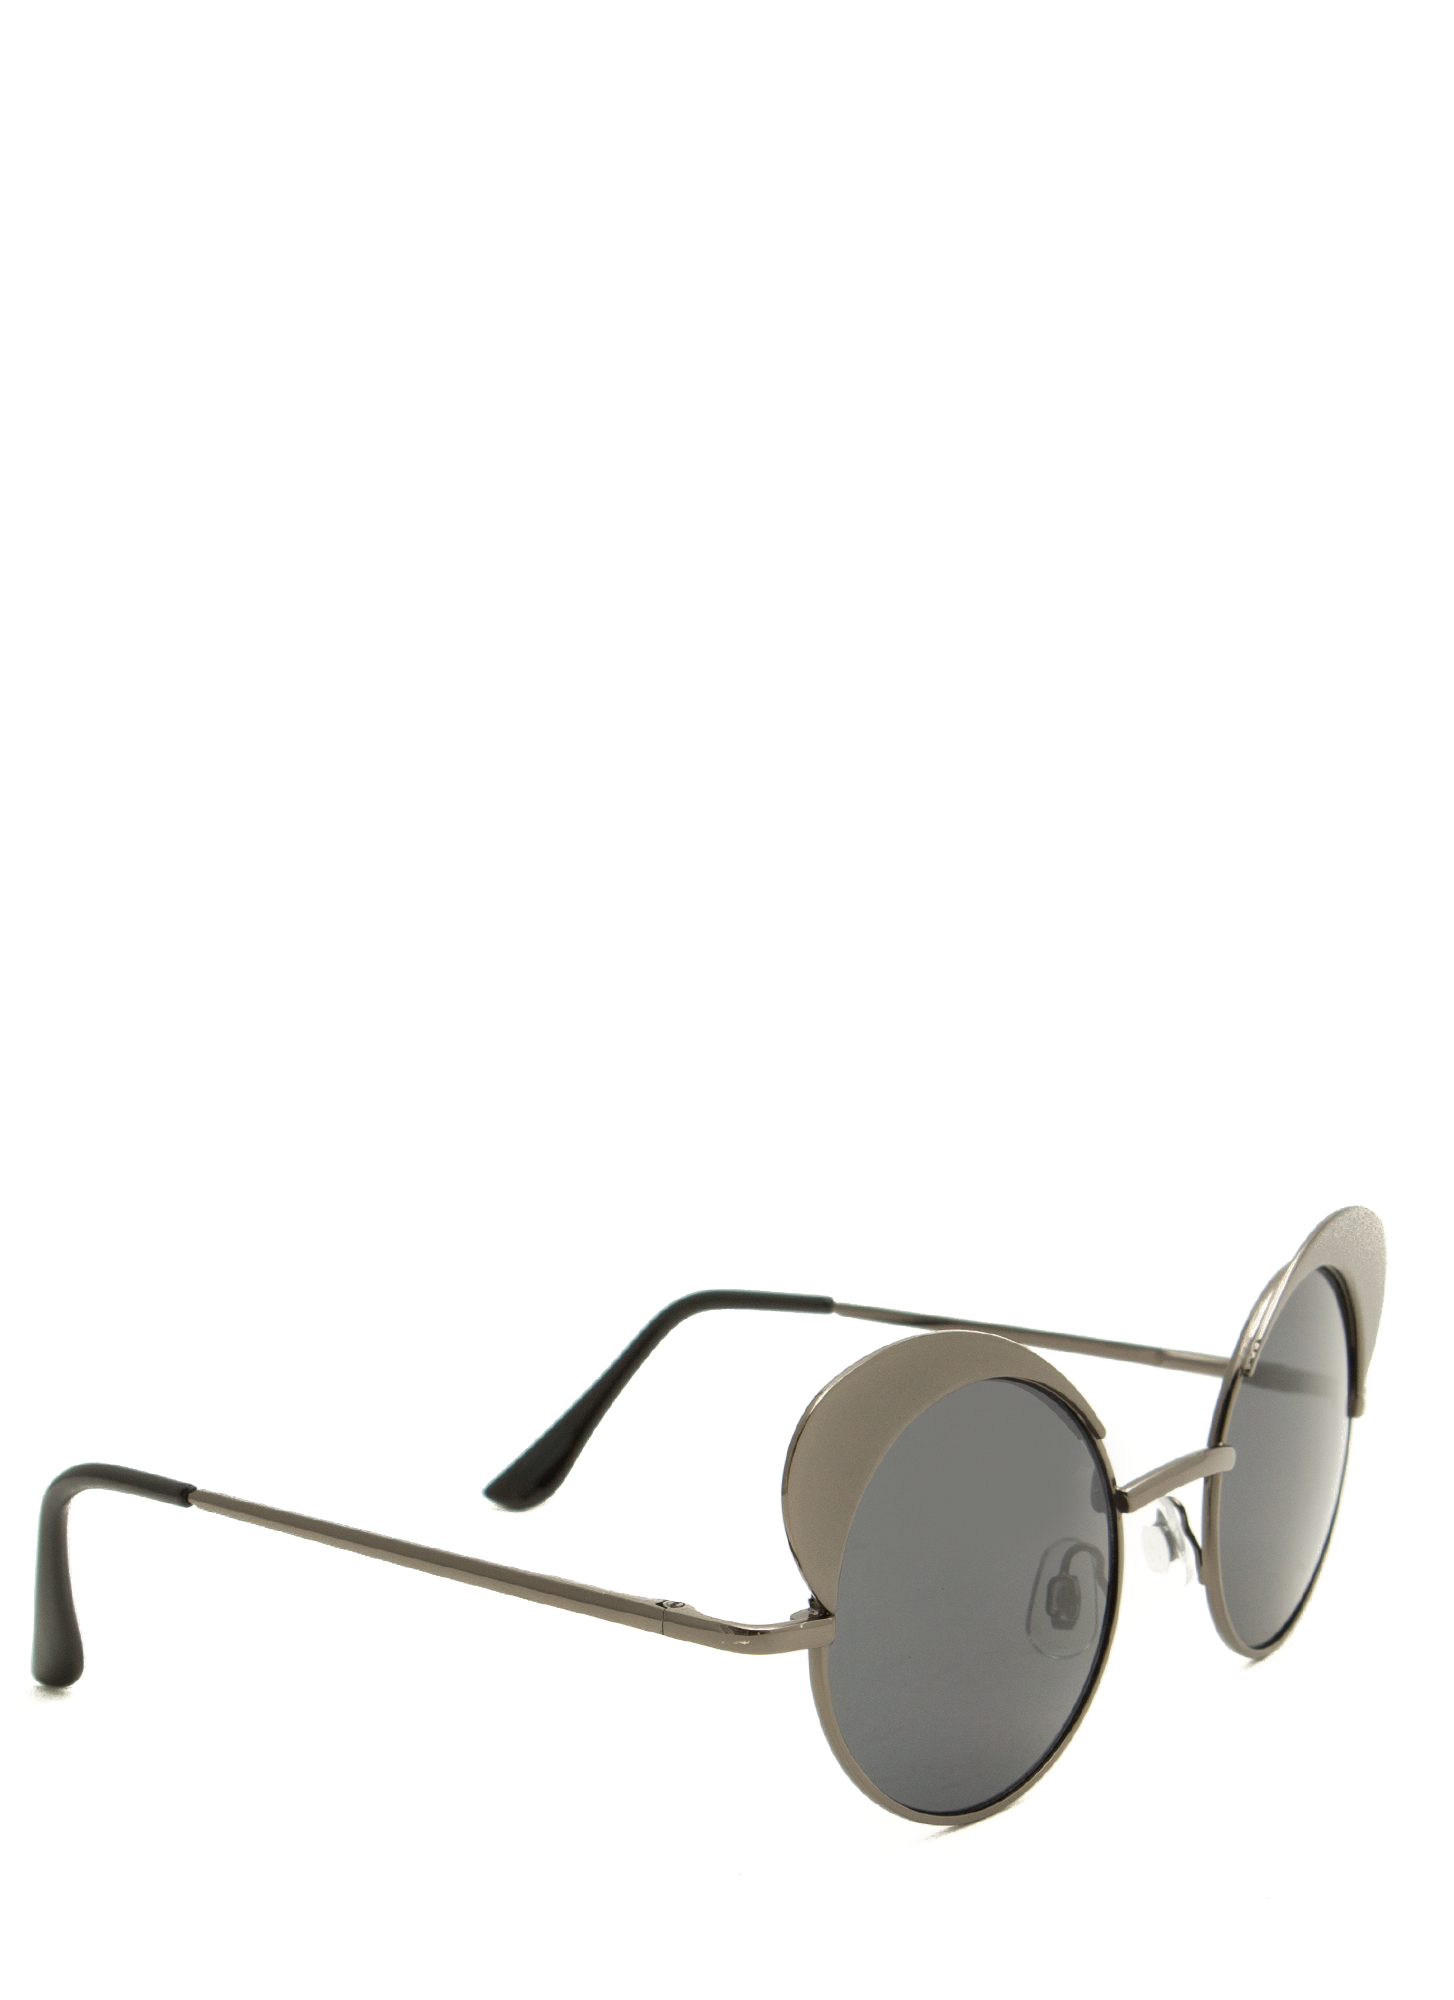 All Curves Rounded Cat Eye Sunglasses PEWTER